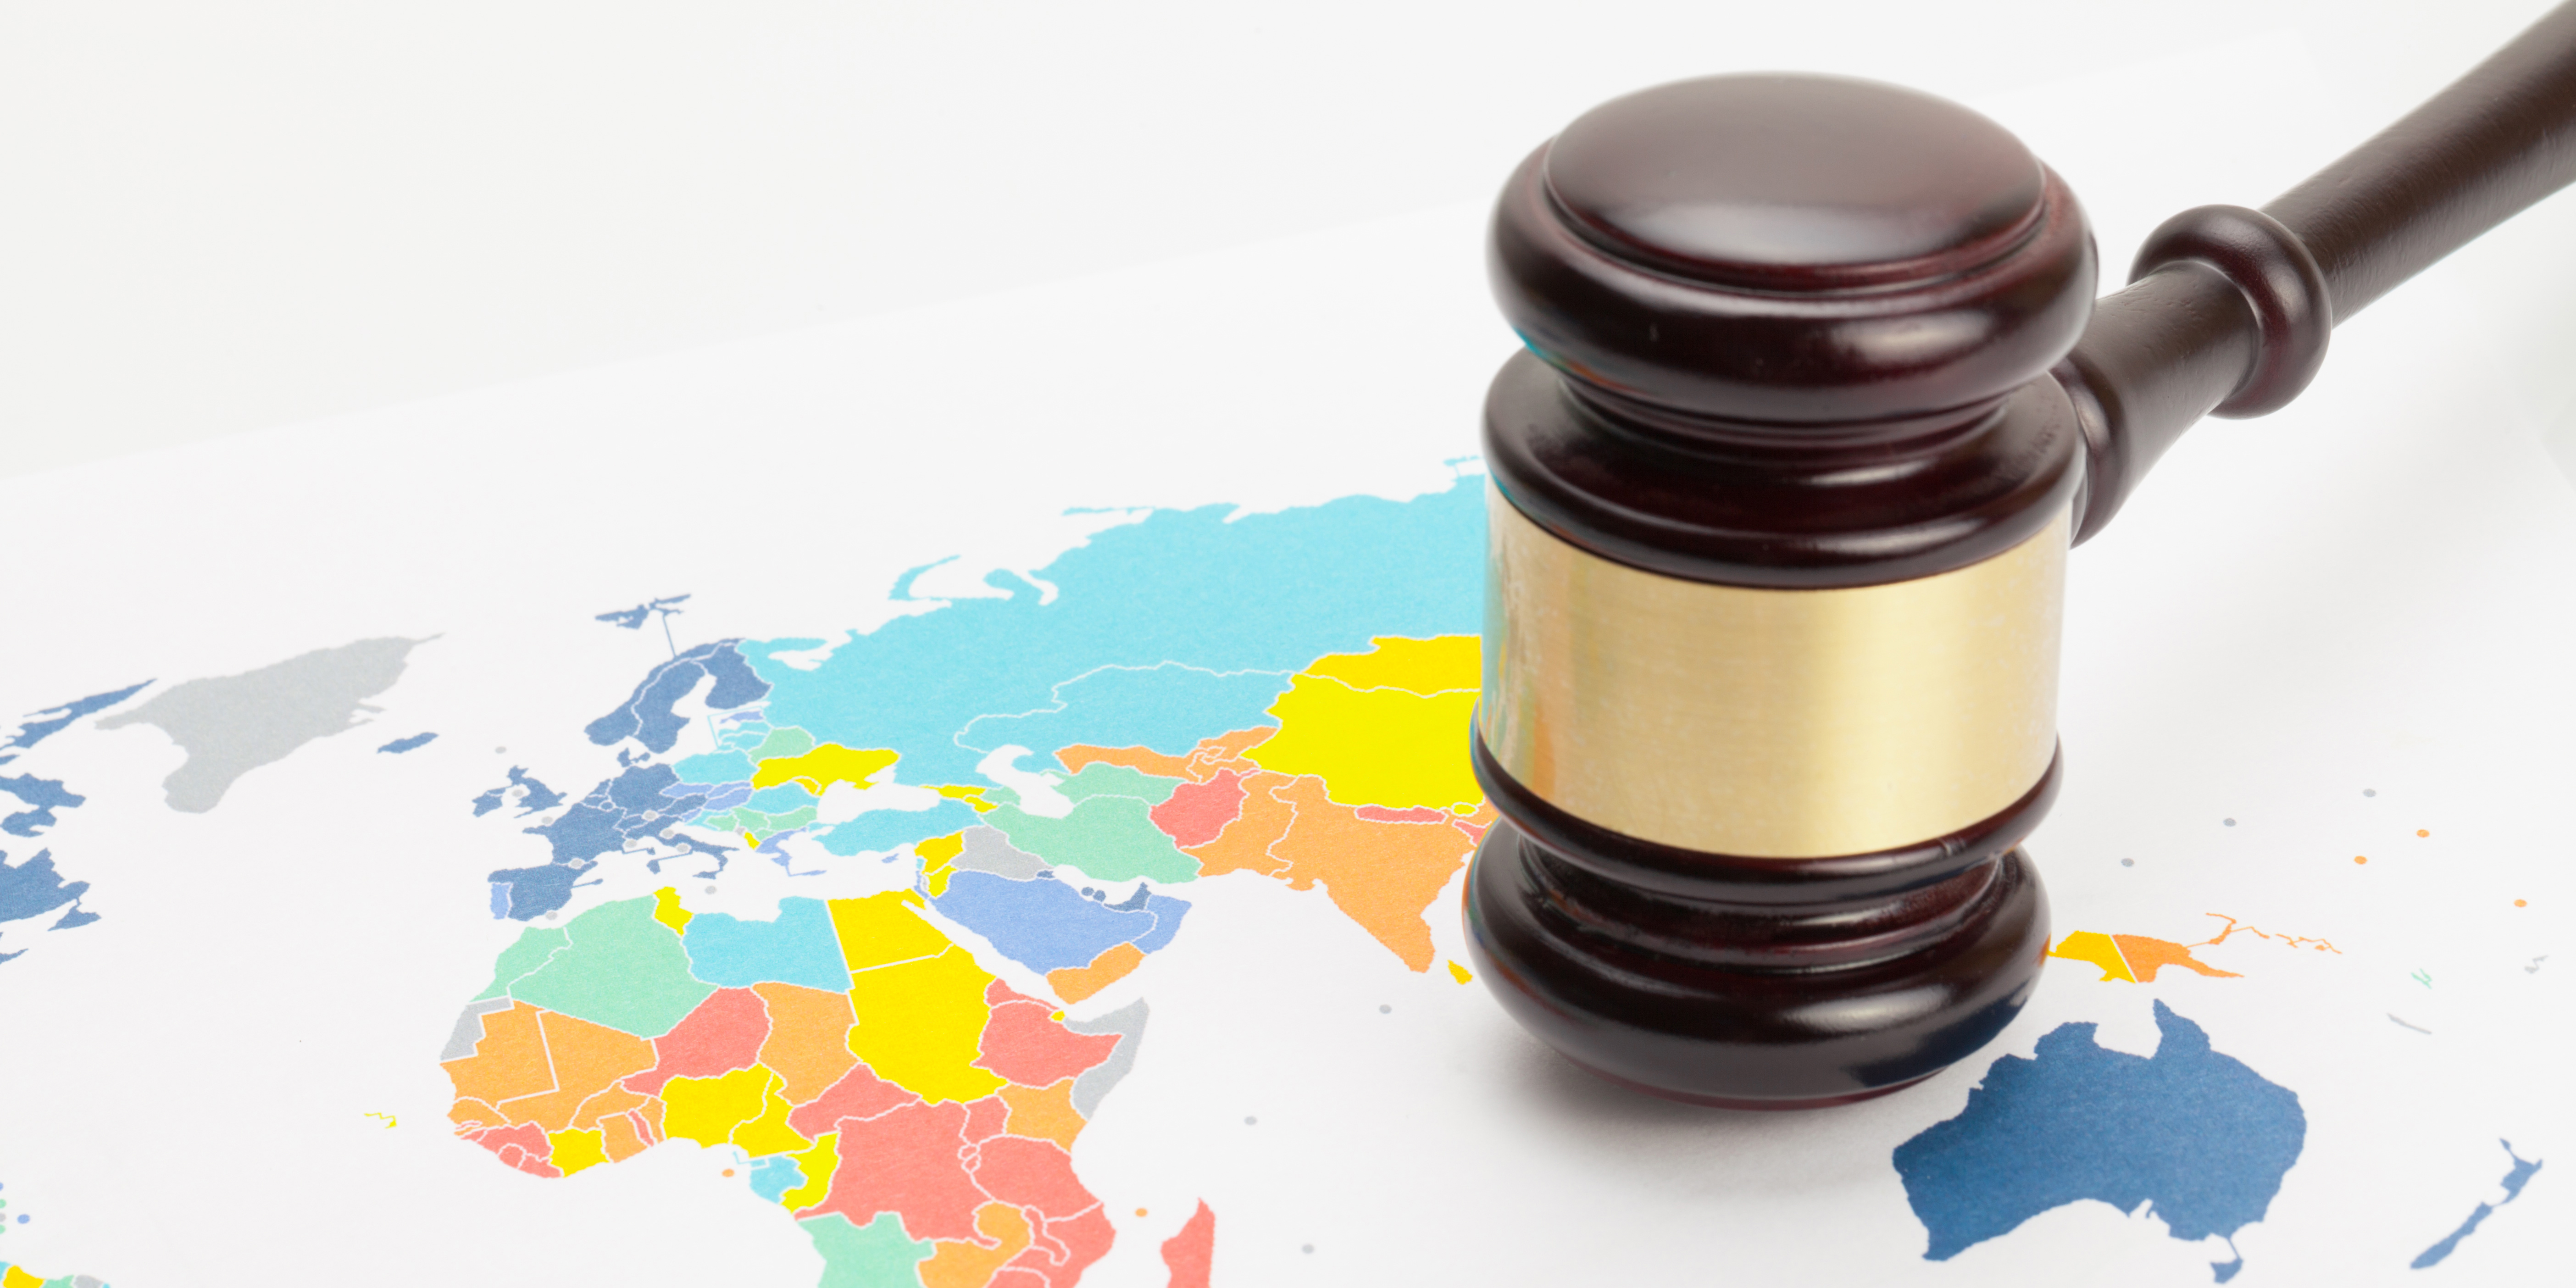 Judge's gavel over colorful world map